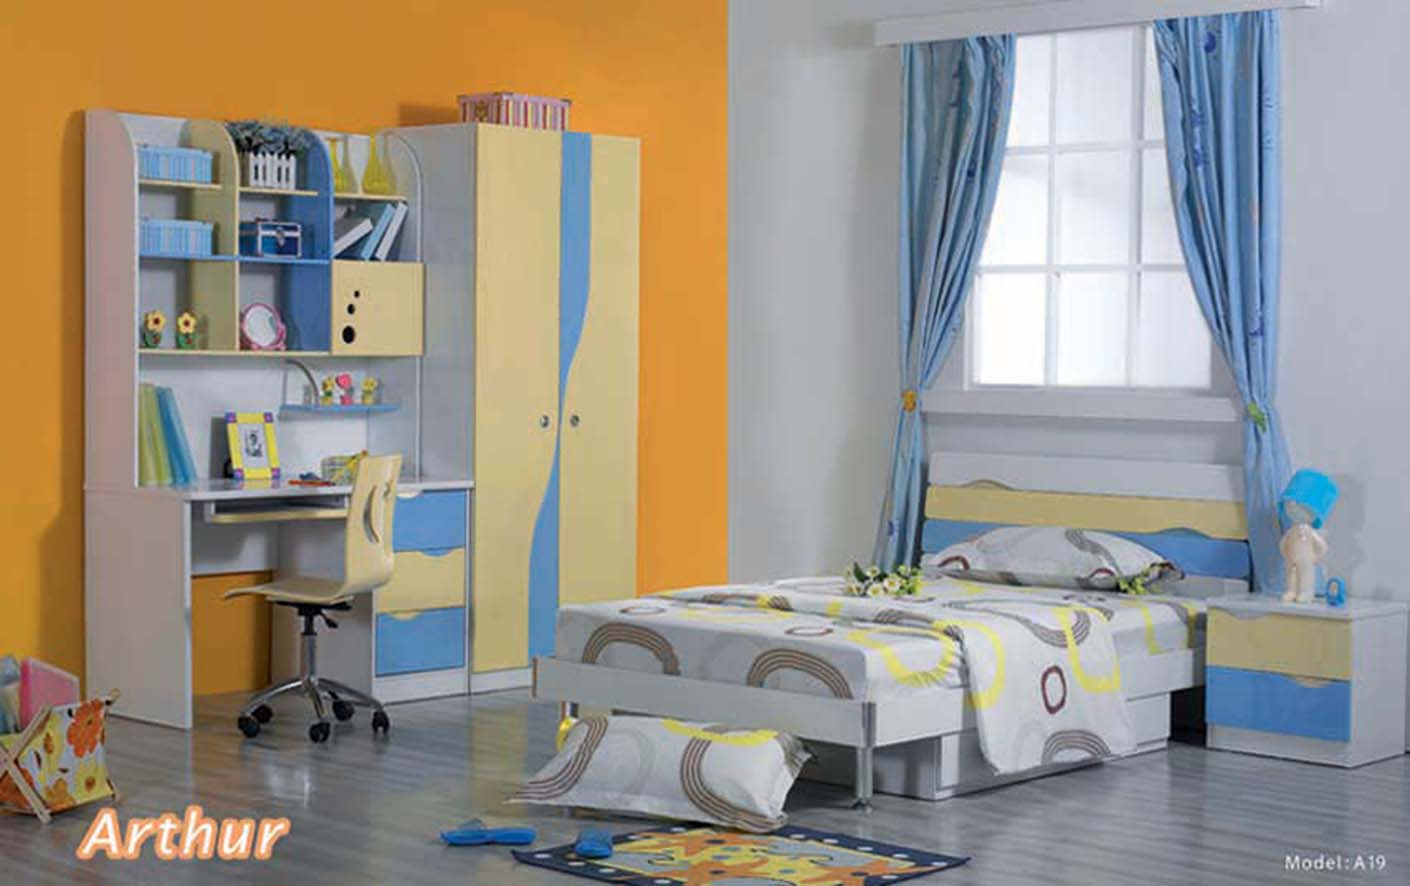 How to design a Kids bedroom